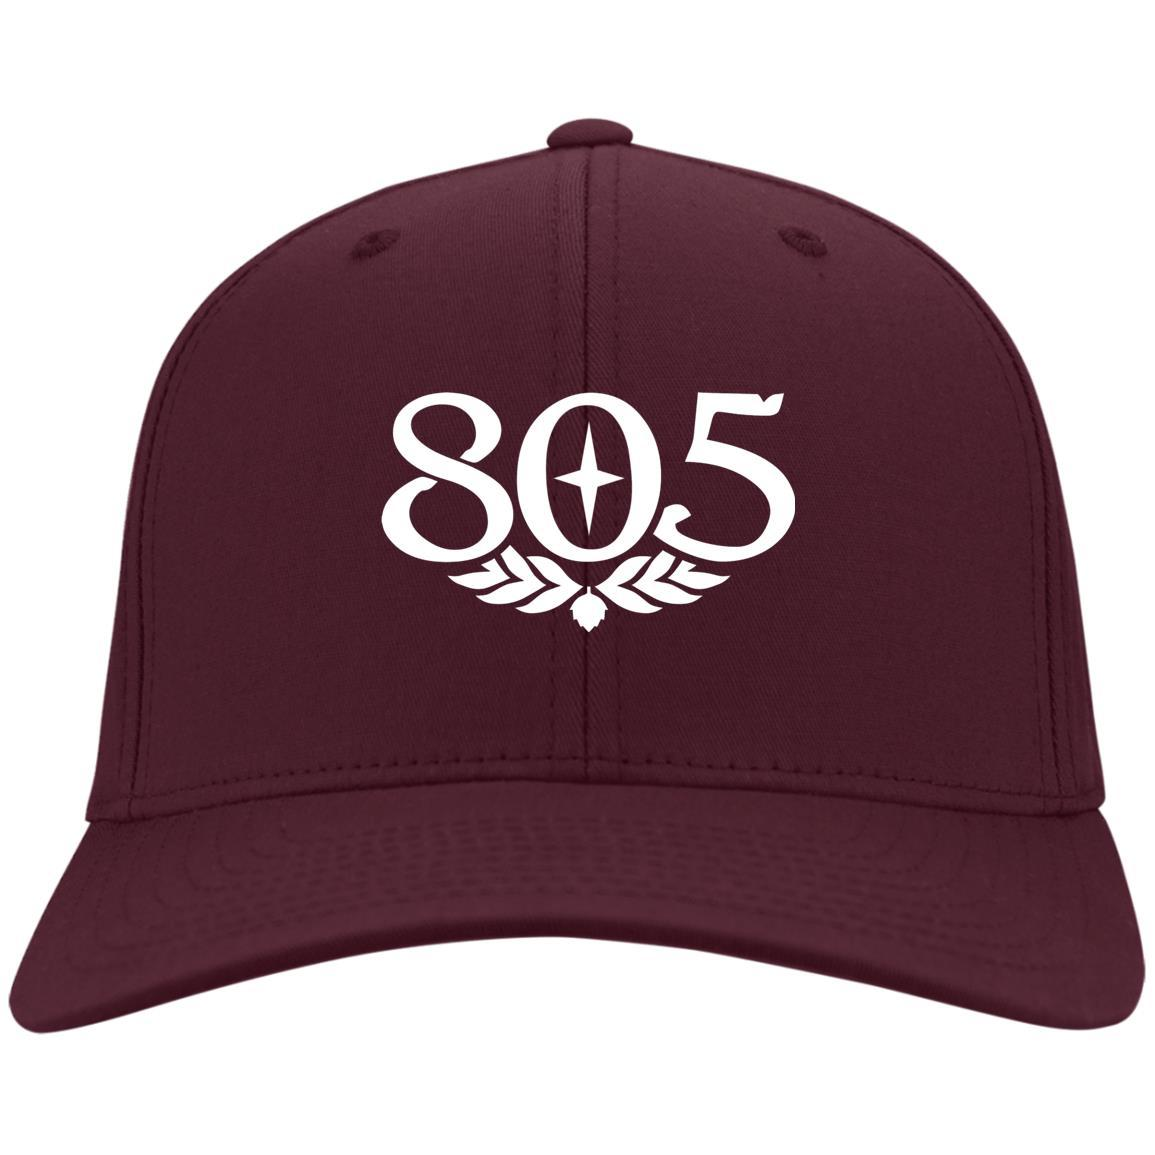 805 Beer - Port & Co. Twill Cap Maroon